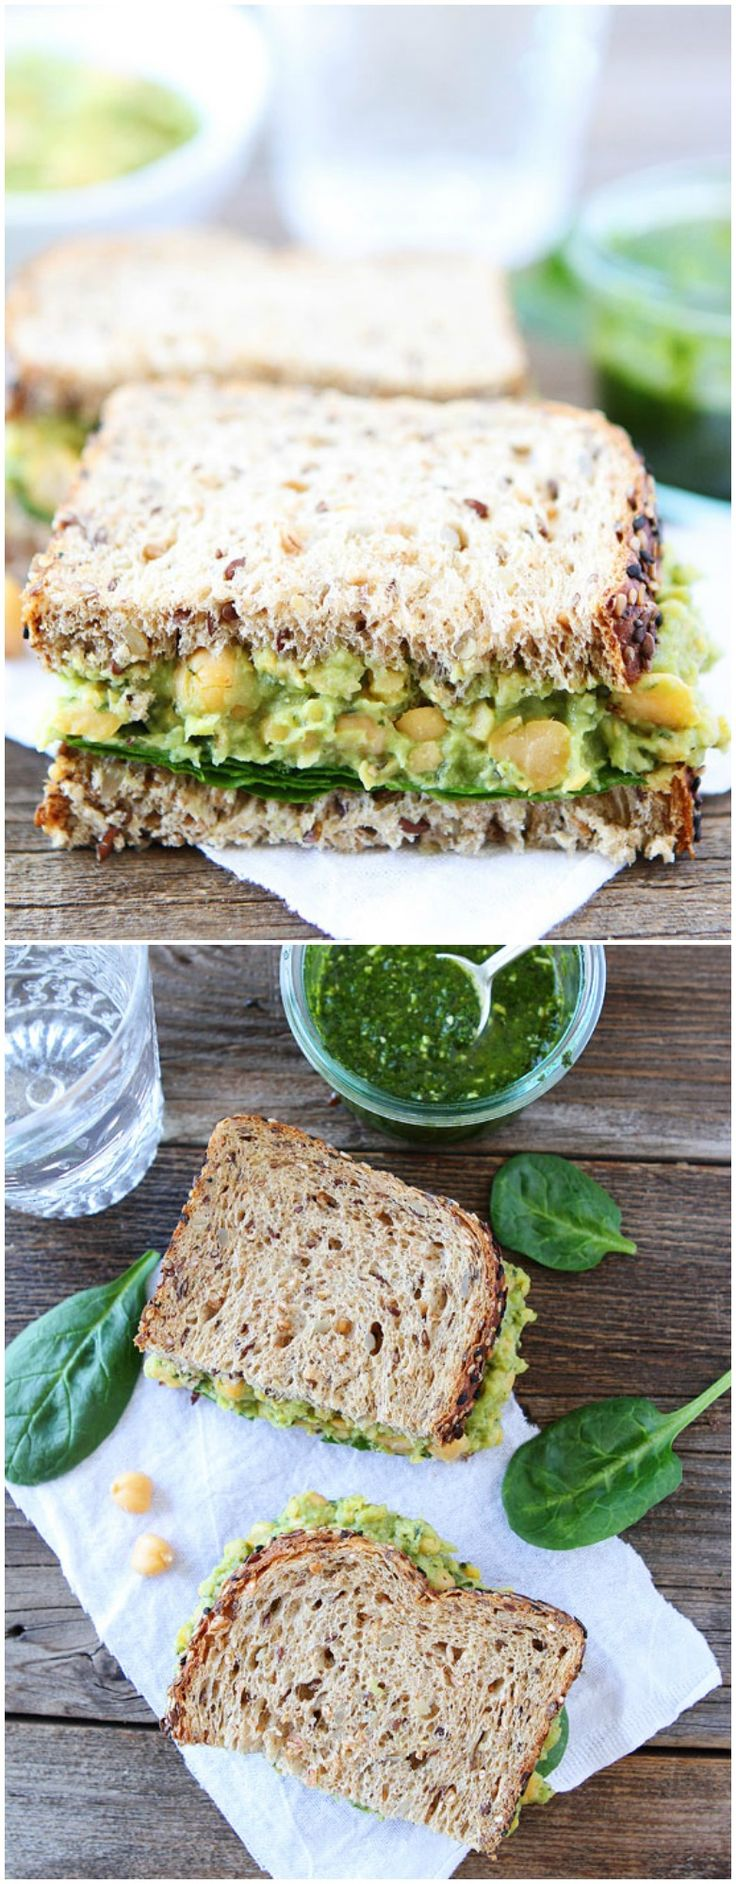 »Smashed Chickpea, Avocado, and Pesto Salad Sandwich Recipe on twopeasandtheirpod.com This healthy sandwich is easy to make and great for lunch or dinner!« #food #foodideas #recipe